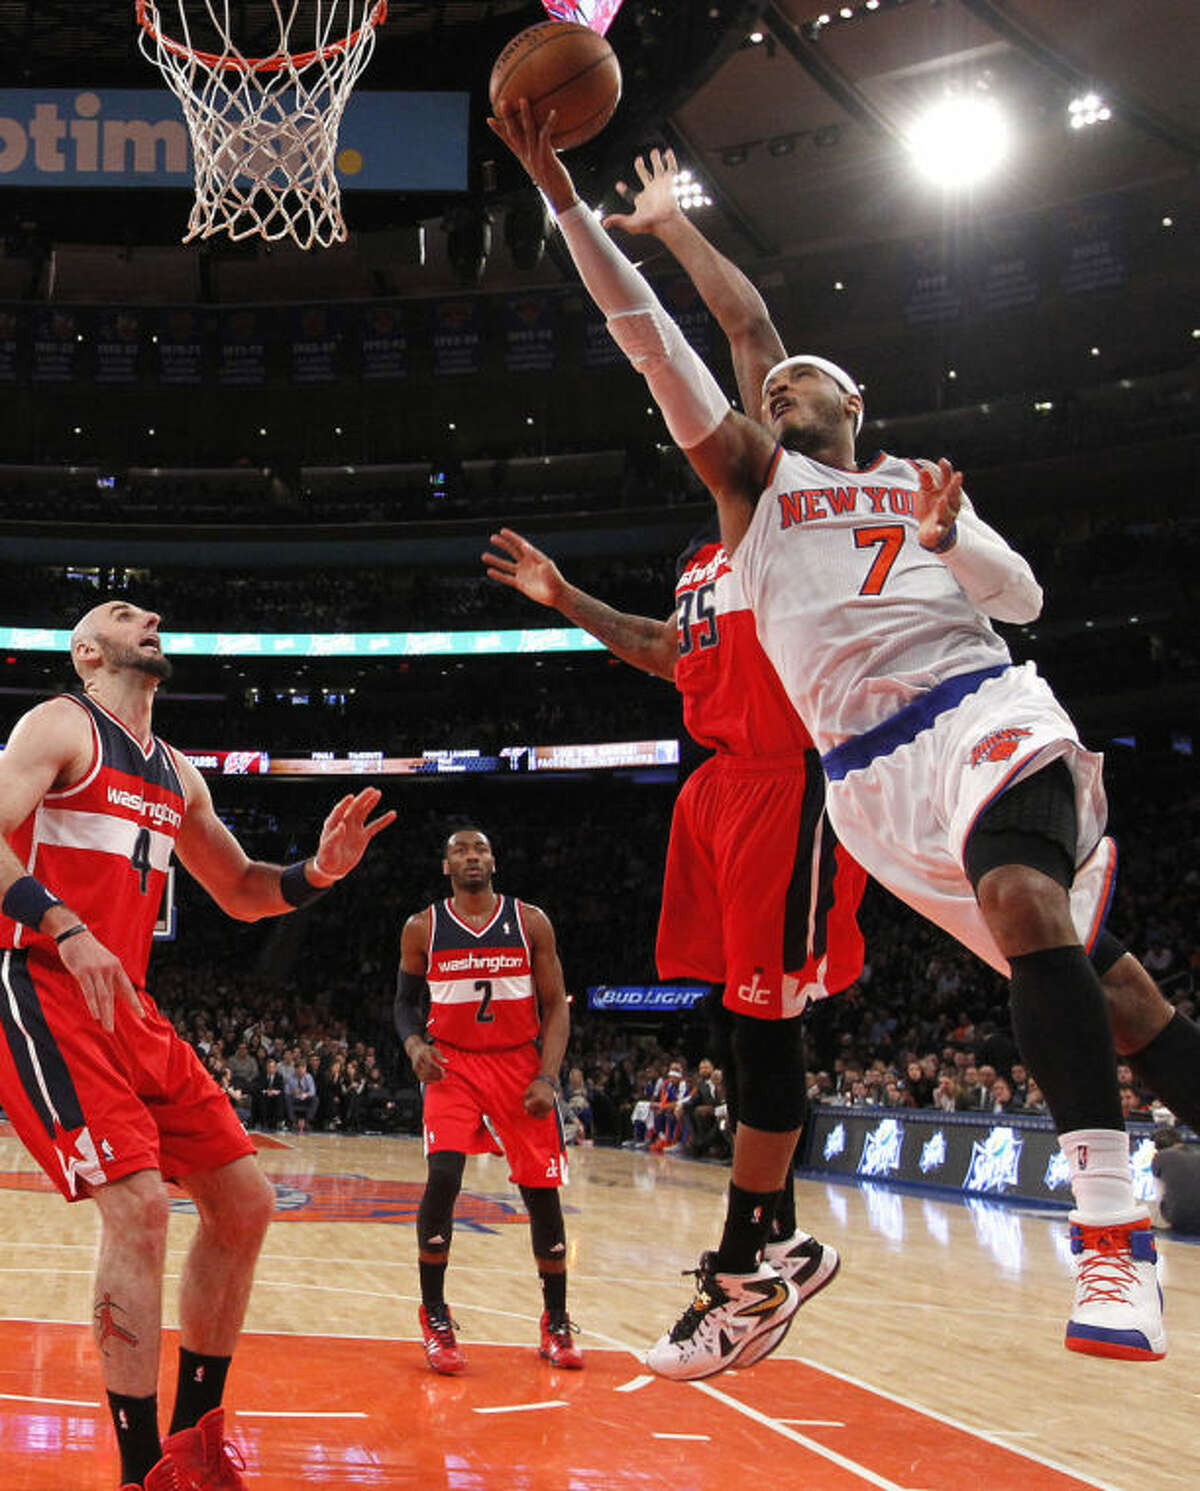 FILe - In this Dec. 16, 2013 file photo, New York Knicks' Carmelo Anthony (7) goes to the basket against Washington Wizards' Trevor Booker (35) during the first half of an NBA basketball game in New York. Signing day has arrived in the NBA, if the biggest free agents care to grab their pens. But it?'s unclear if Carmelo Anthony, Chris Bosh and Dwyane Wade _ who all might be waiting on LeBron James to go first _ are ready.(AP Photo/Jason DeCrow, File)